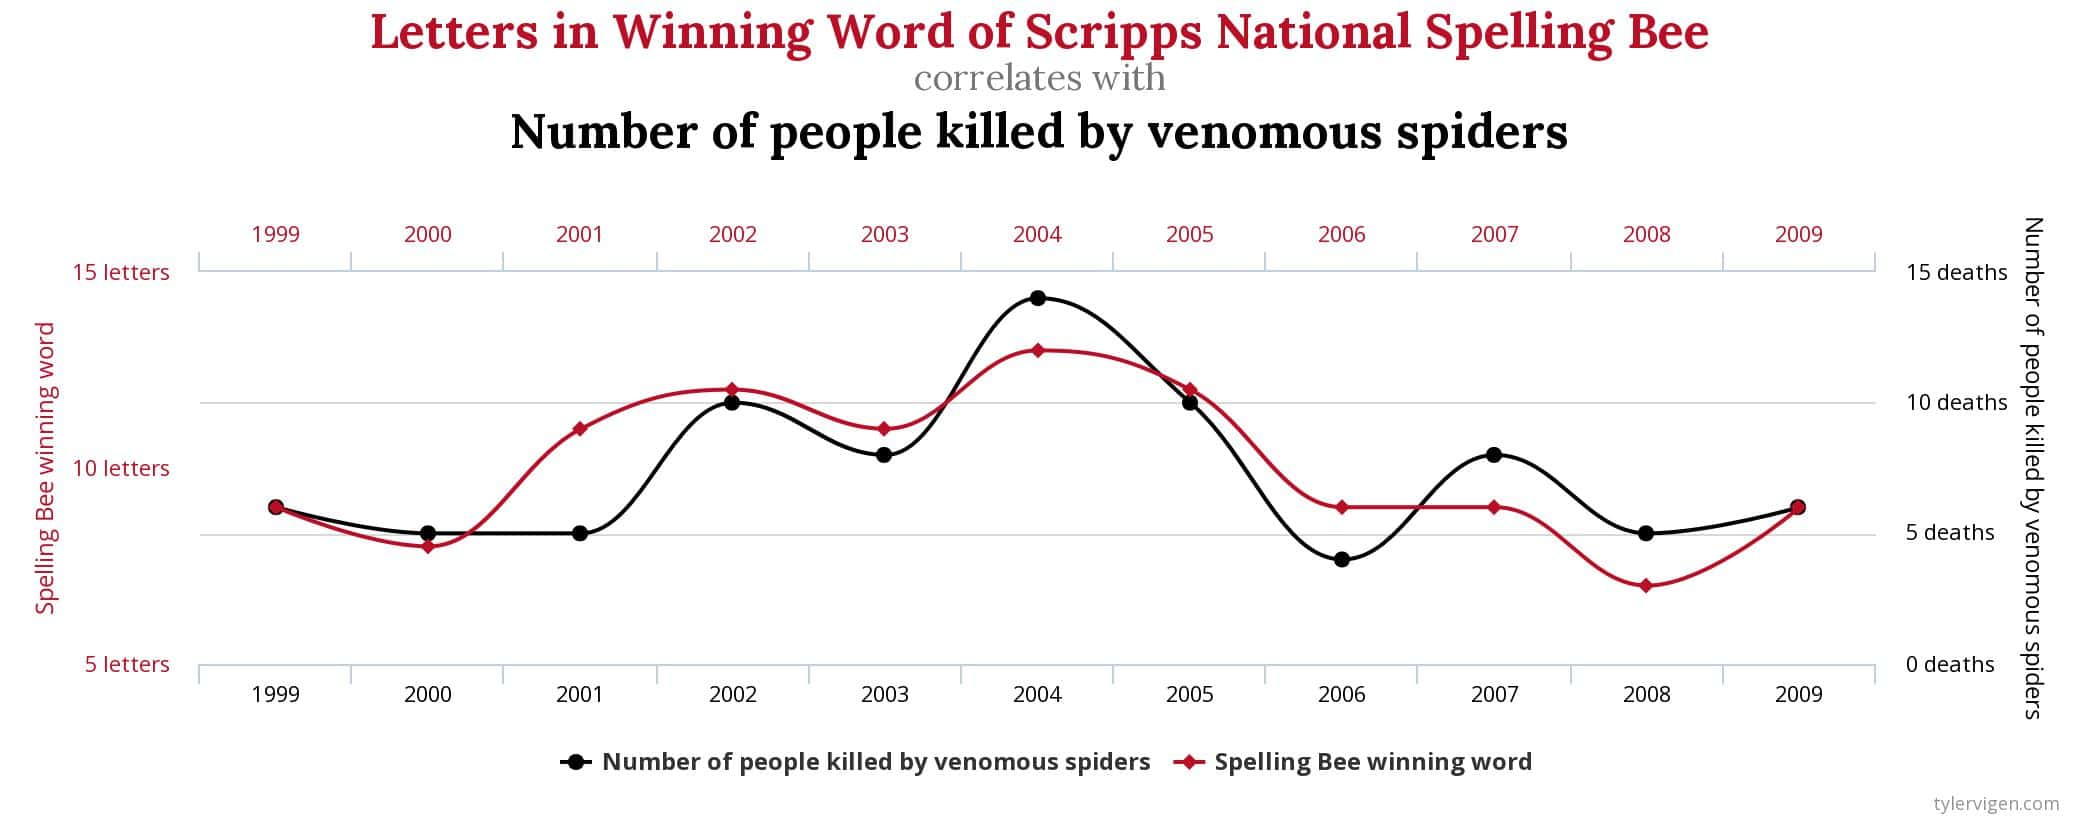 Spurious associations such as the number of letters in the winning word of the spelling bee and the number of people killed by venomous spiders